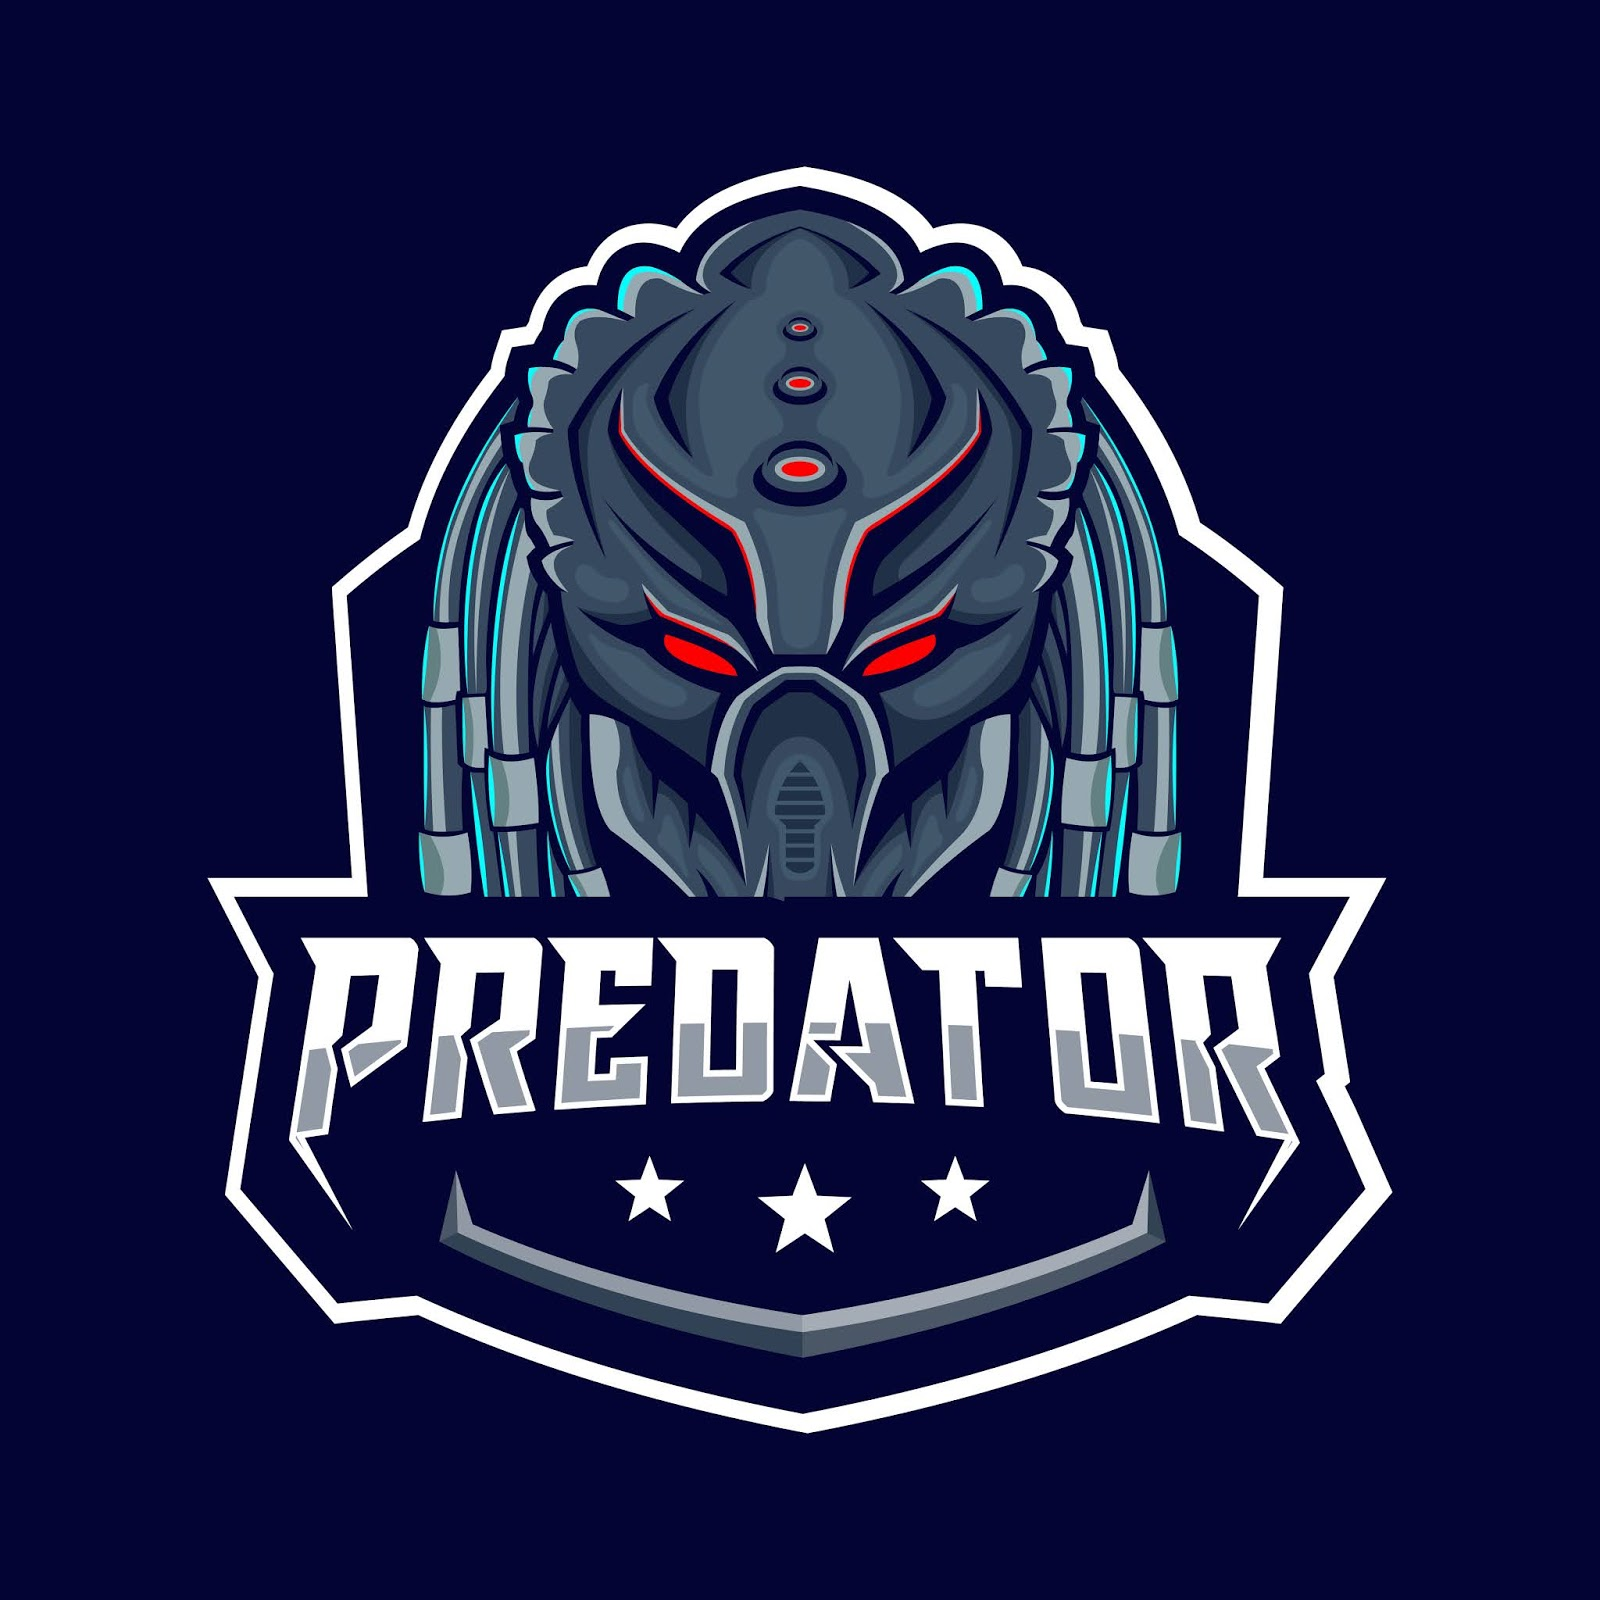 Predator Blue Badge Free Download Vector CDR, AI, EPS and PNG Formats